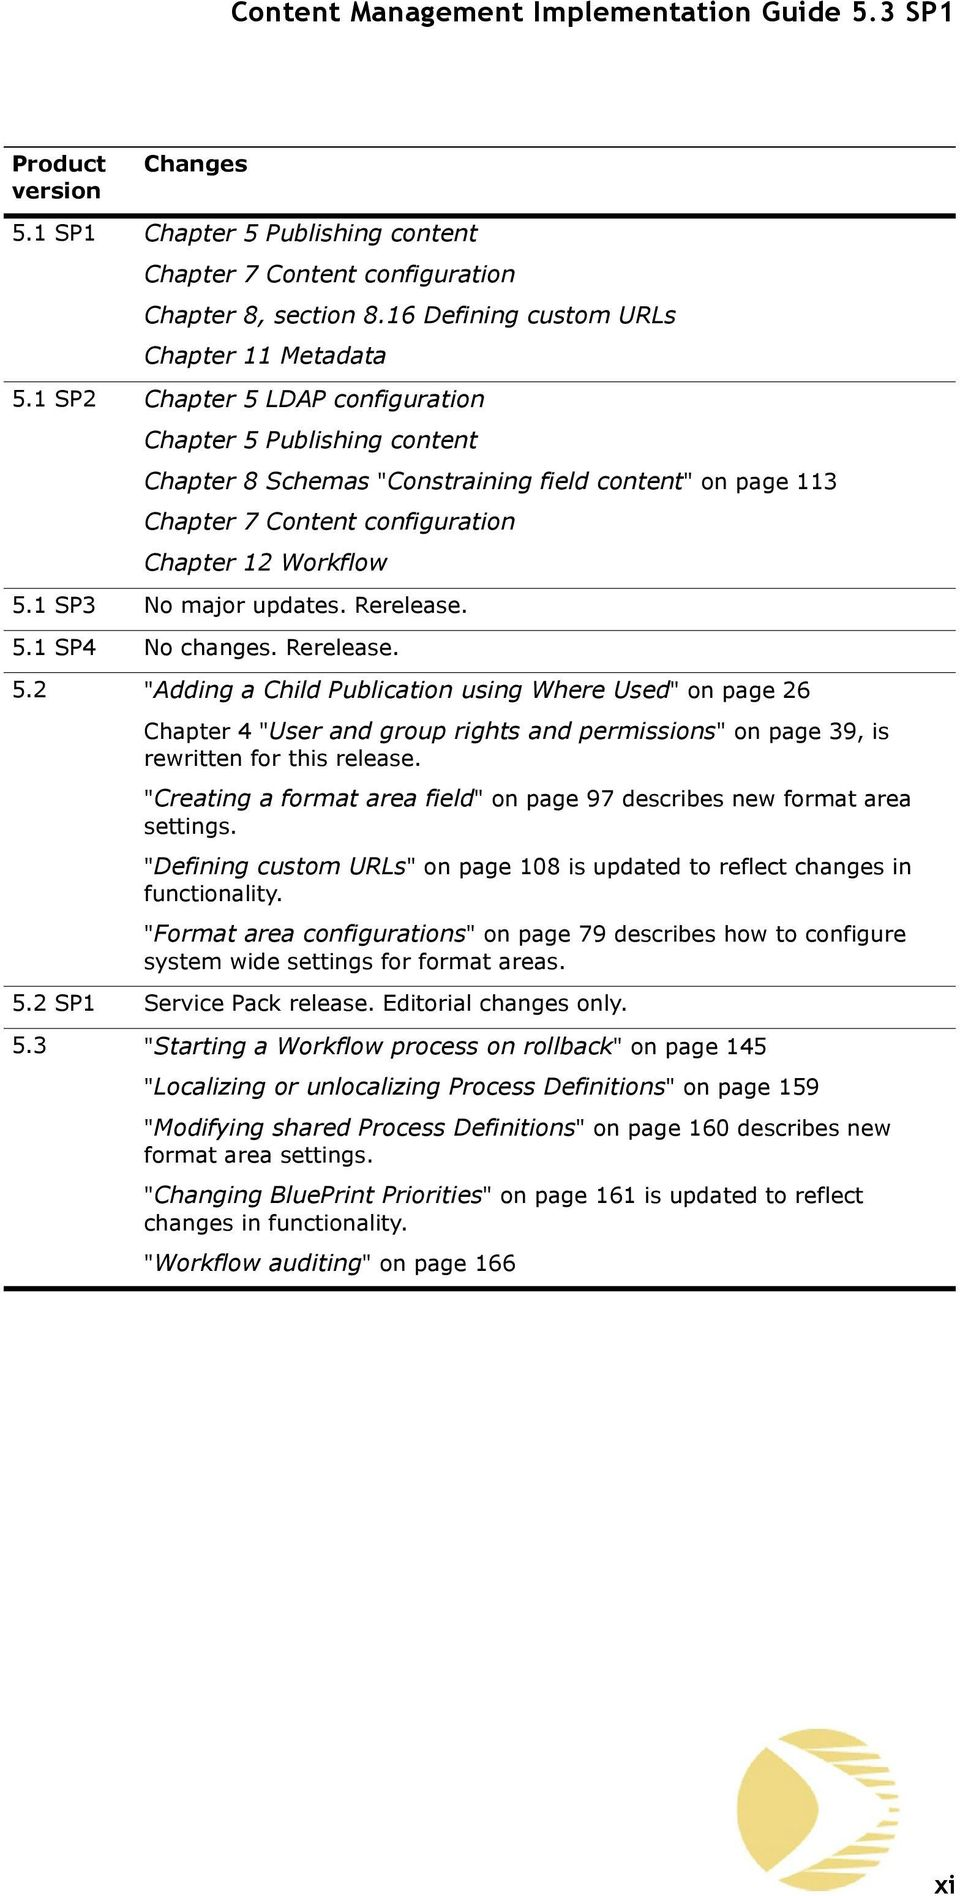 "1 SP2 Chapter 5 LDAP configuration Chapter 5 Publishing content Chapter 8 Schemas ""Constraining field content"" on page 113 Chapter 7 Content configuration Chapter 12 Workflow 5.1 SP3 No major updates."